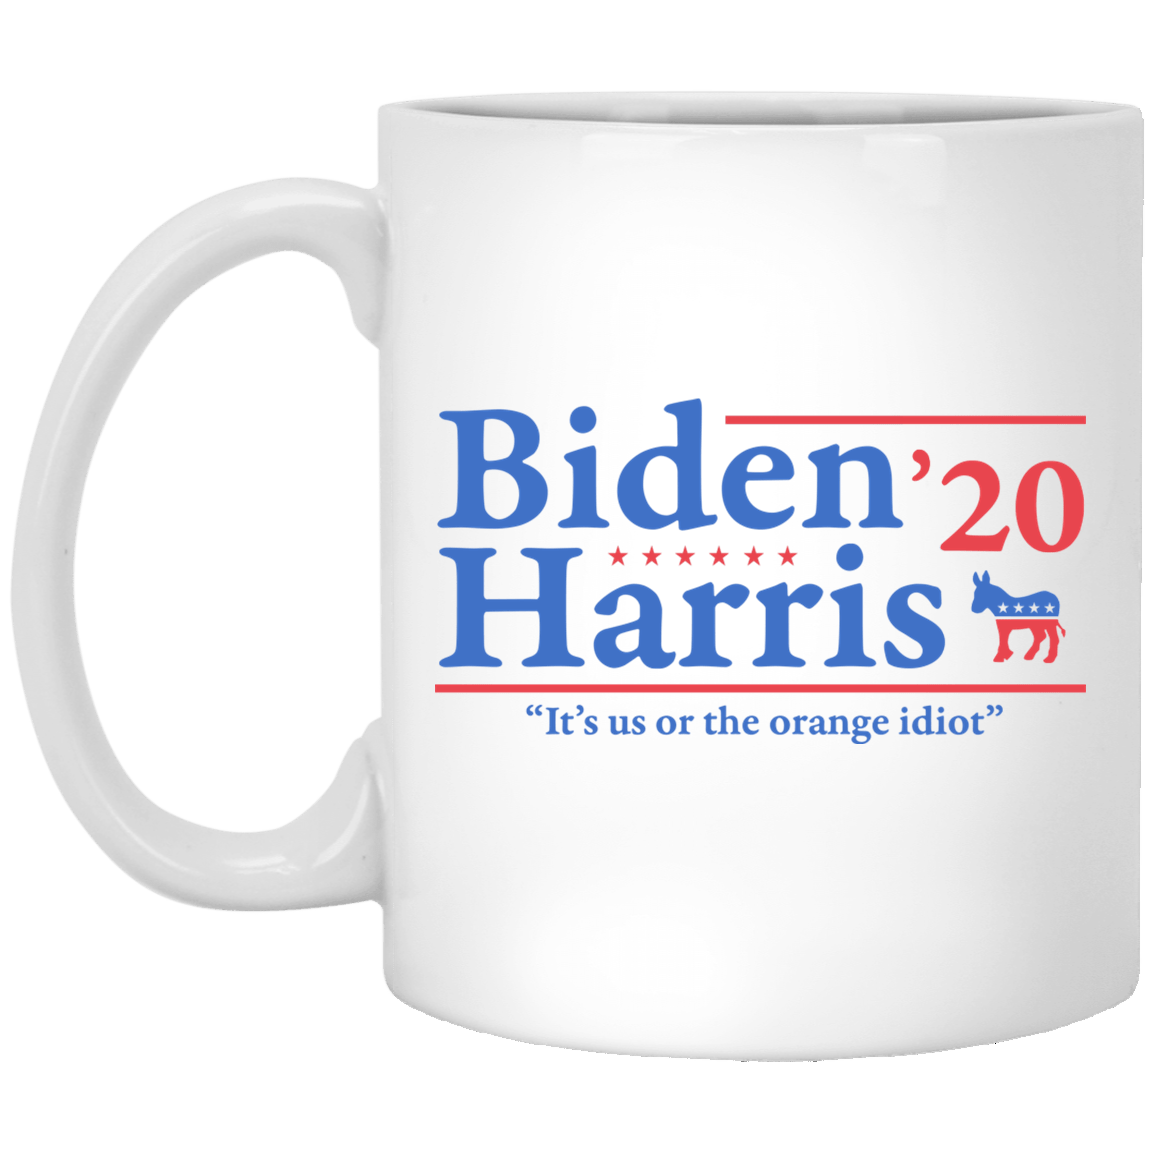 Joe Biden Kamala Harris 2020 It's Us Or The Orange idiot Mug 1005-9786-88282904-47417 - Tee Ript